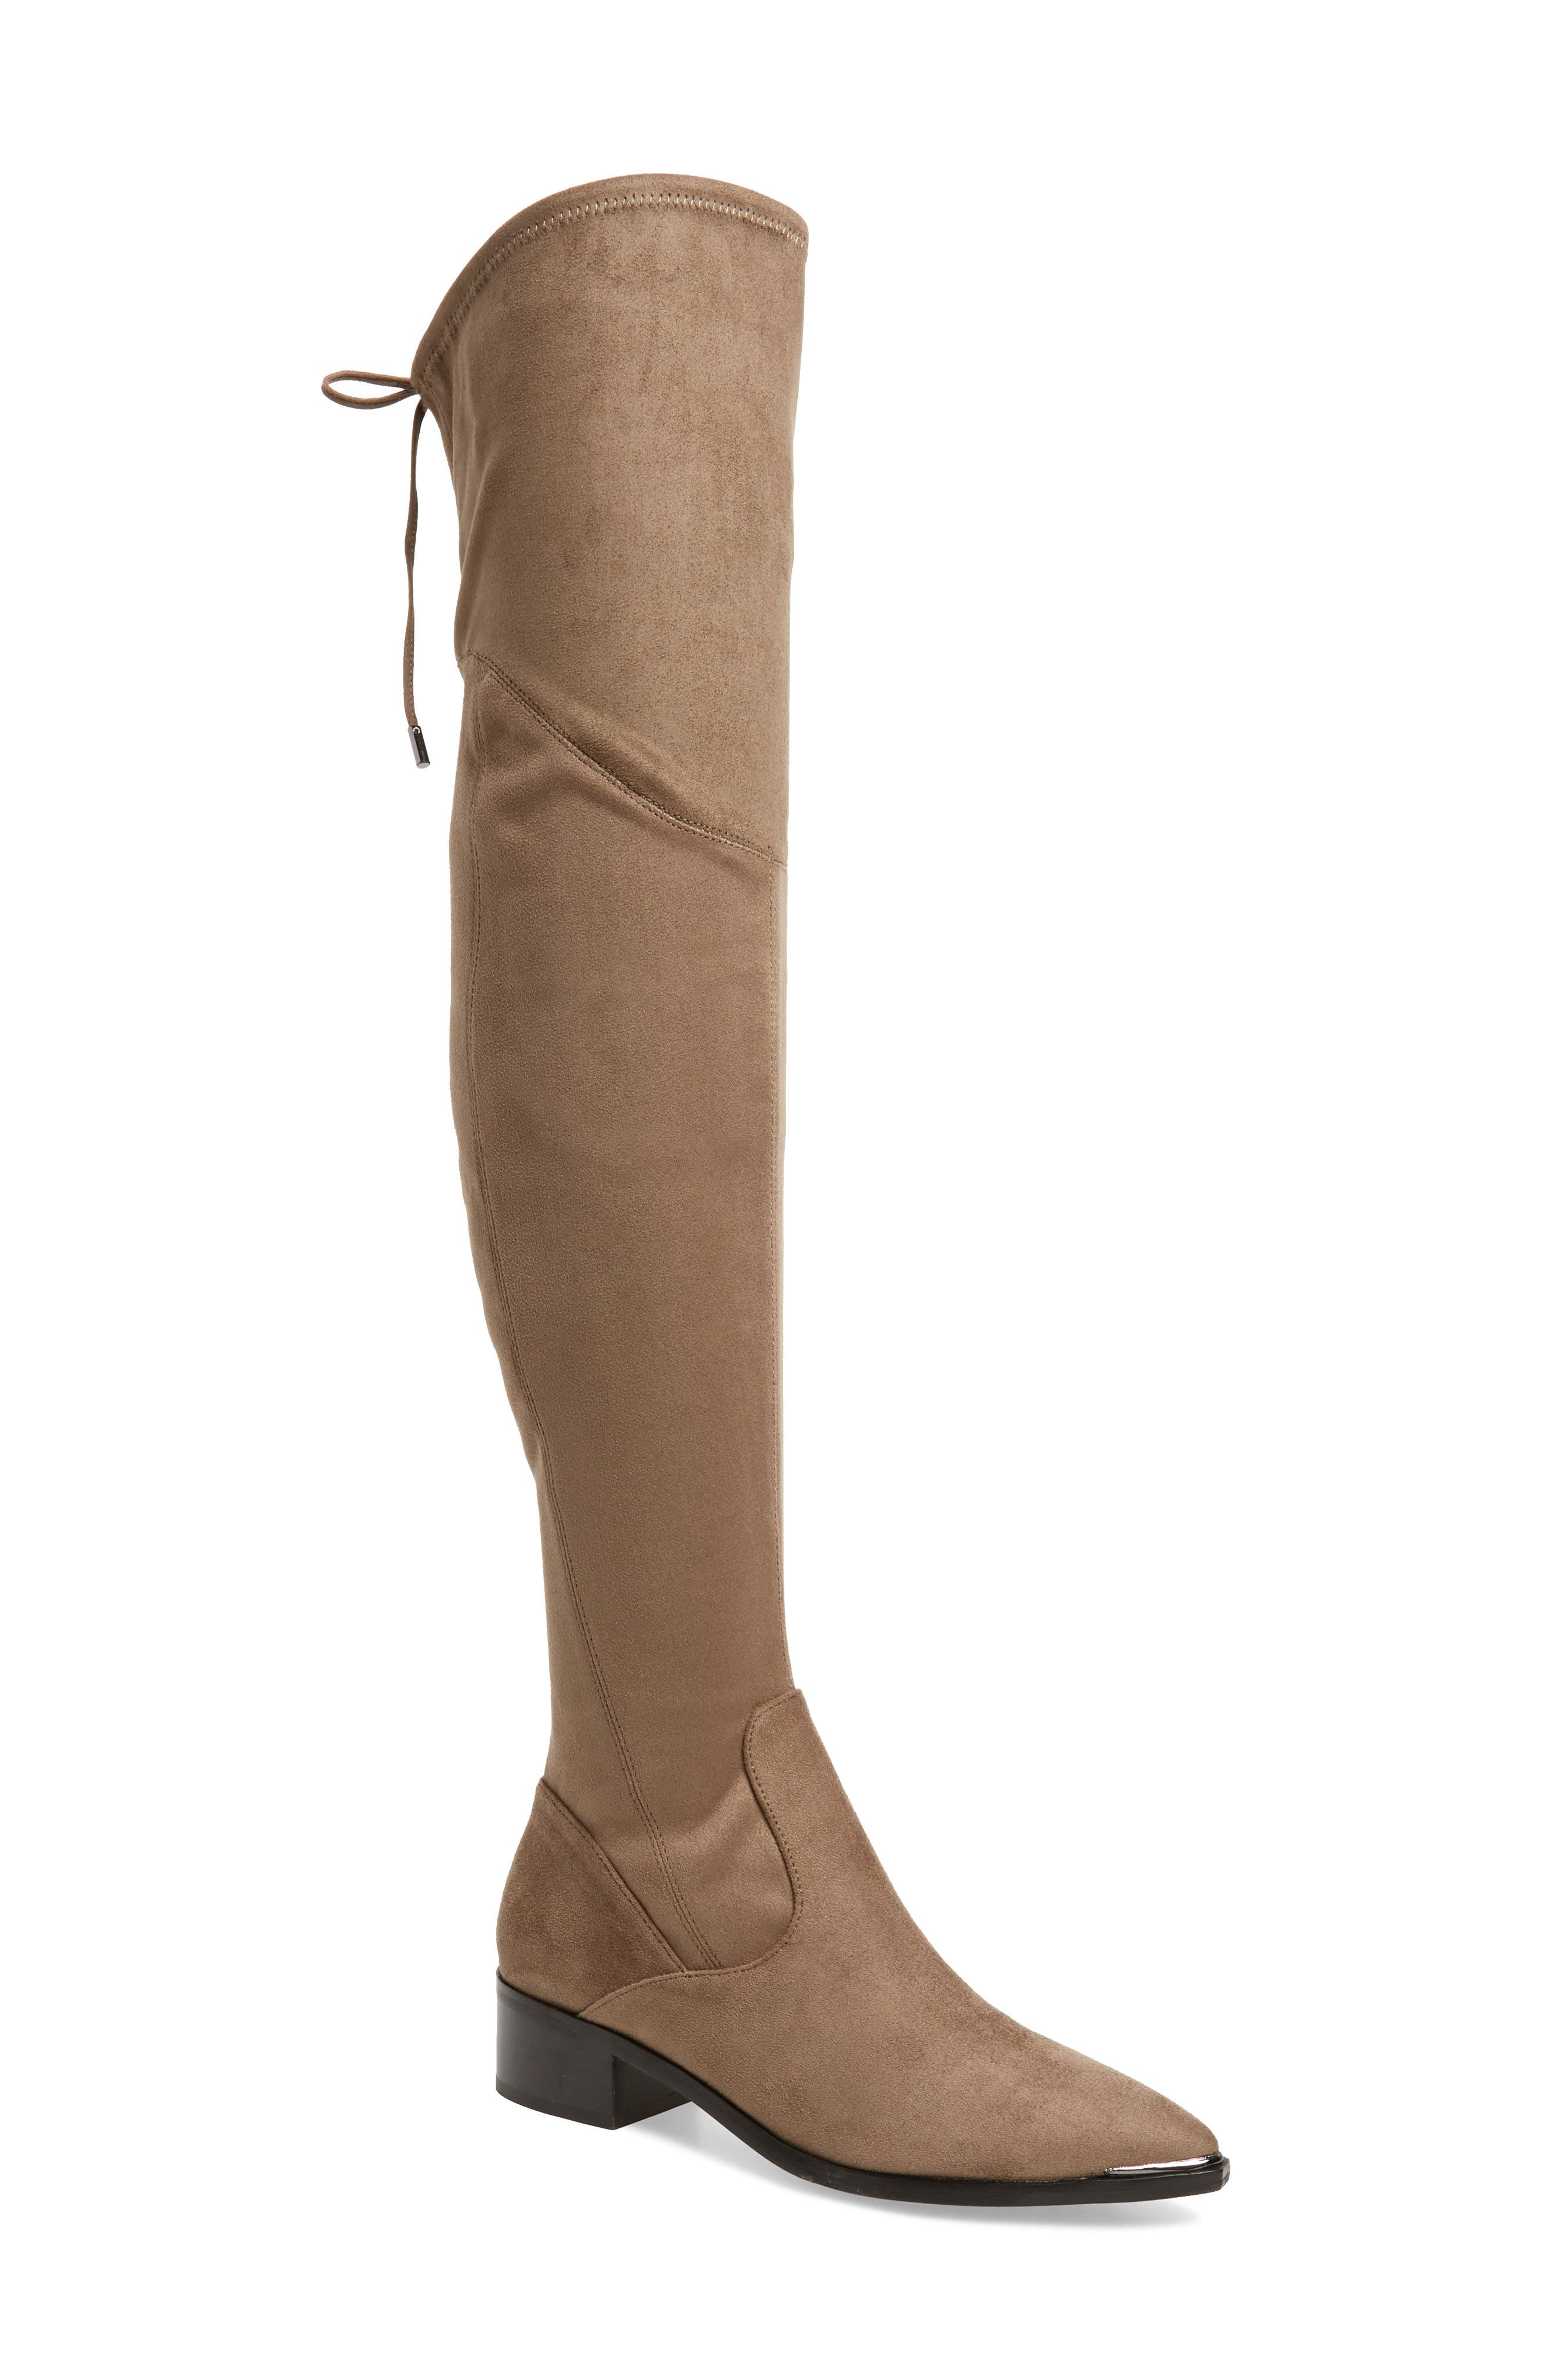 Yuna Over the Knee Boot,                             Main thumbnail 1, color,                             Taupe Faux Suede